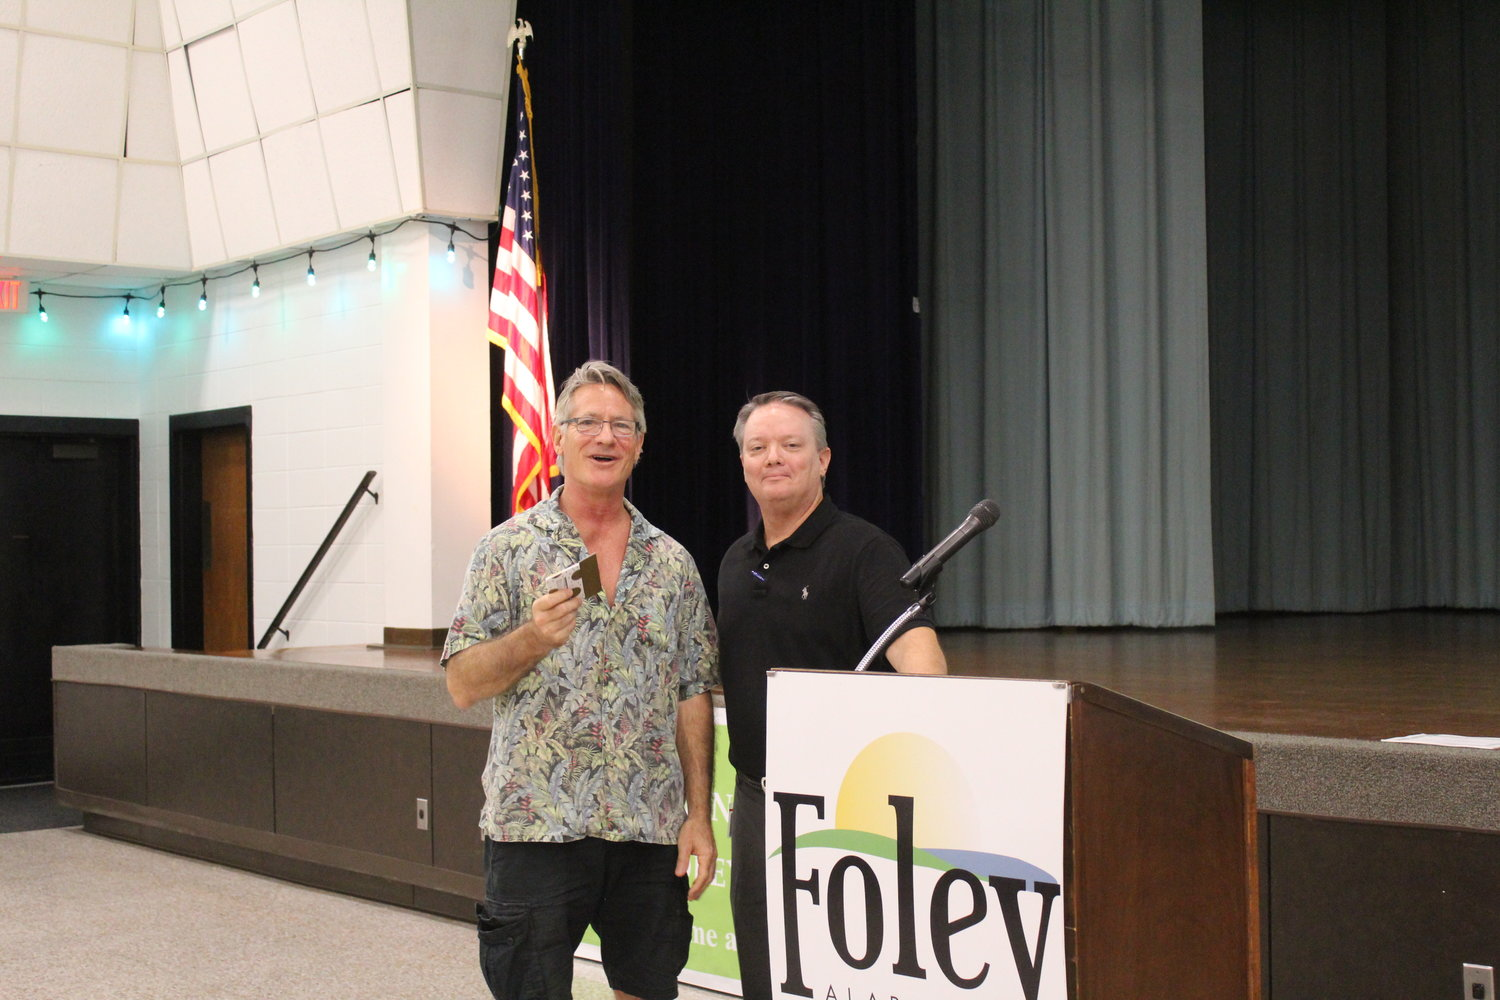 Foley Library Patron of the Year Les Lyden and Library Director John Jackson.